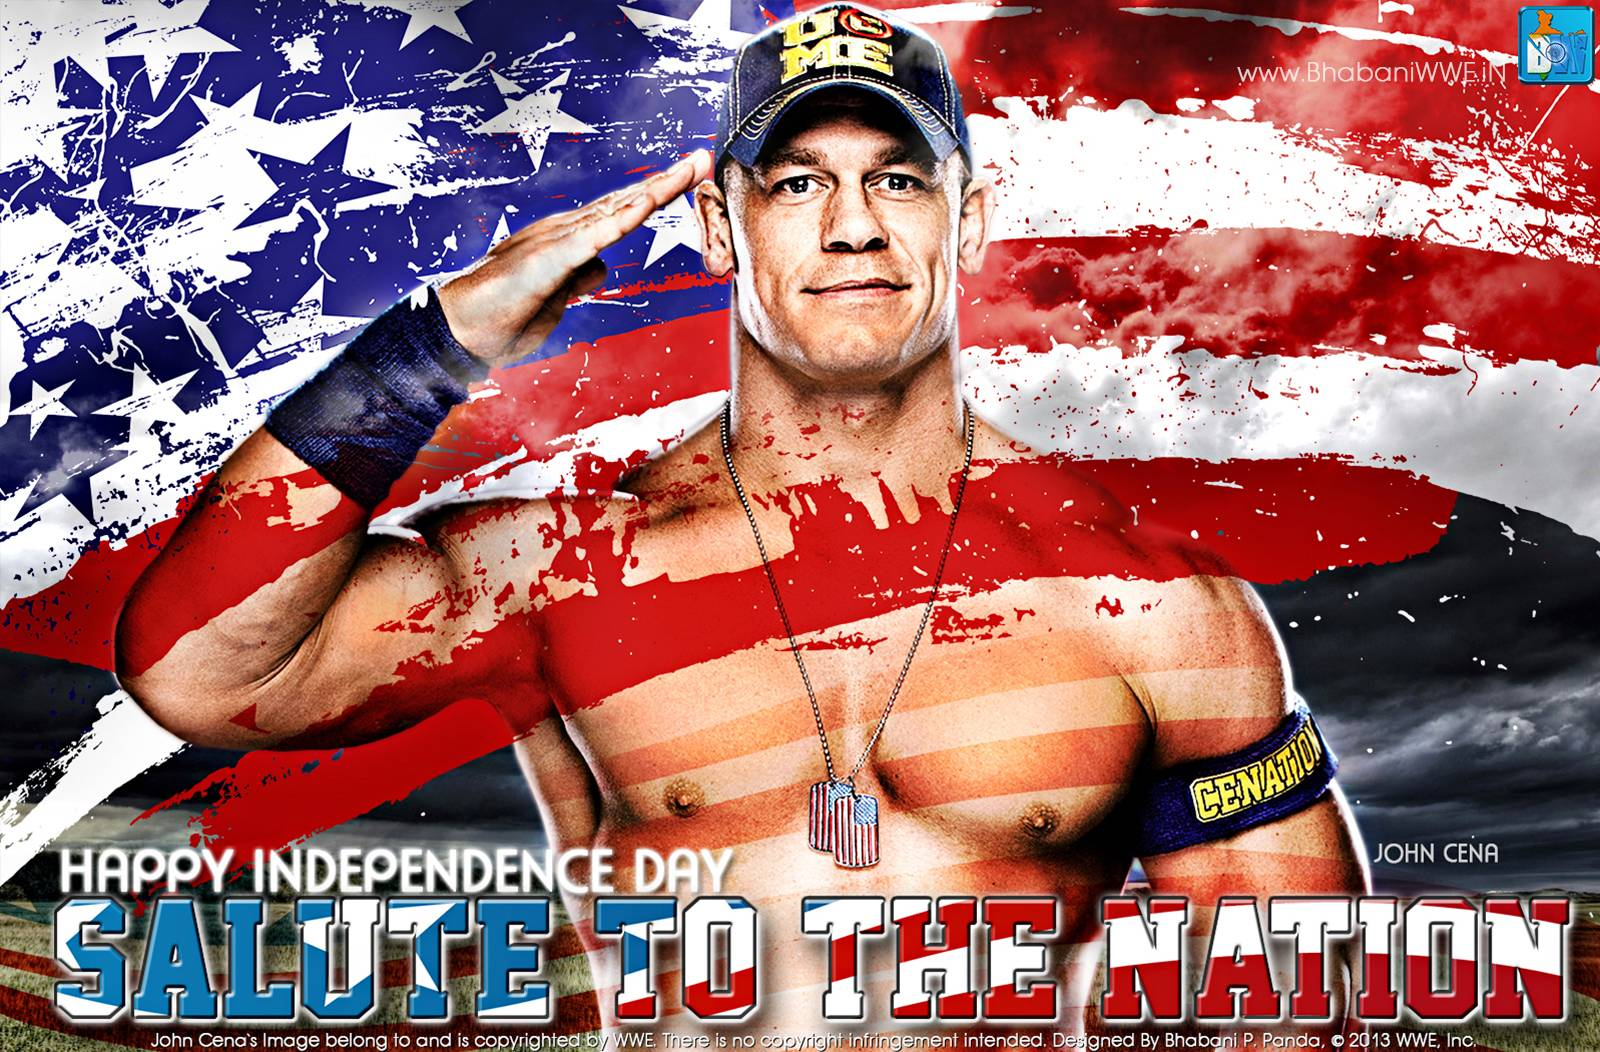 john cena wallpaper and background image | 1600x1052 | id:658656